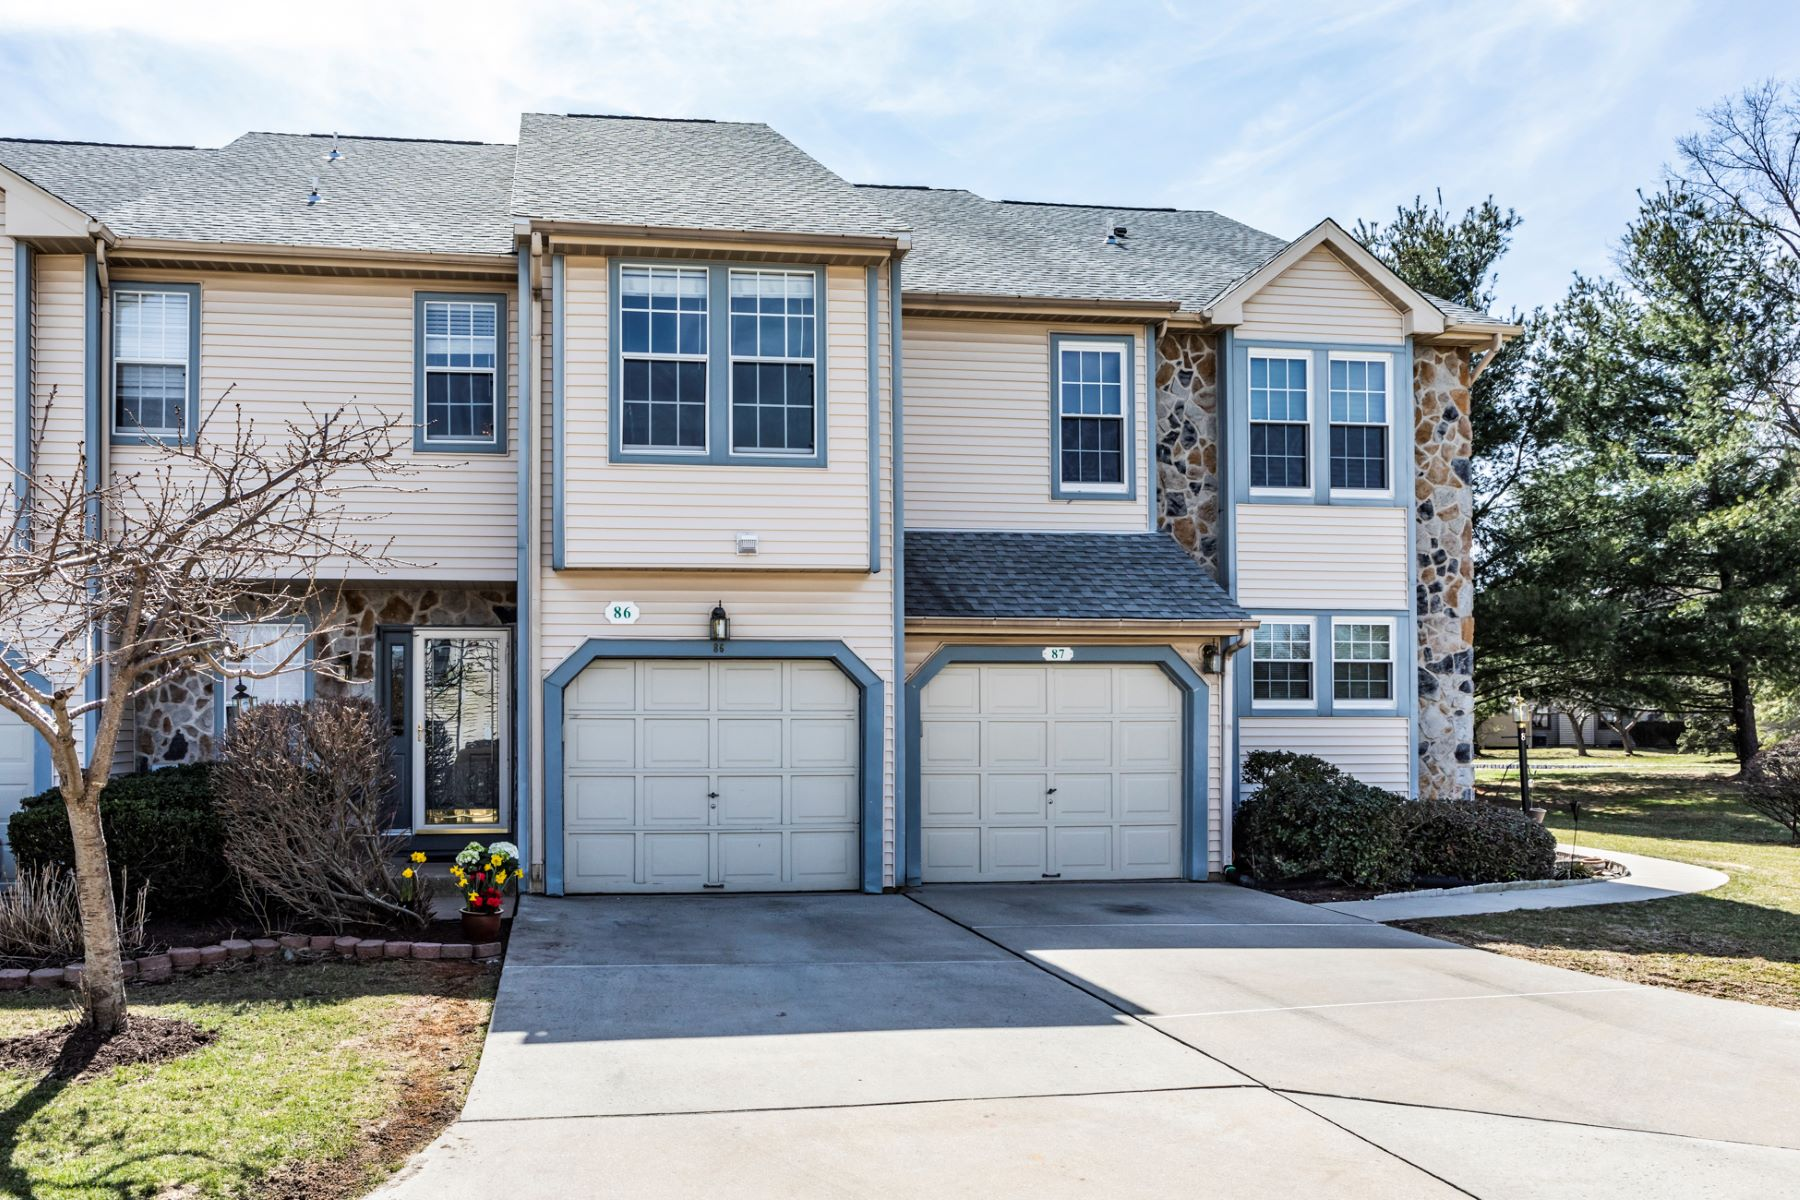 Townhouse for Sale at Filled To The Brim With Stylish Upgrades 86 Castleton Road, Princeton, New Jersey 08540 United StatesMunicipality: Montgomery Township